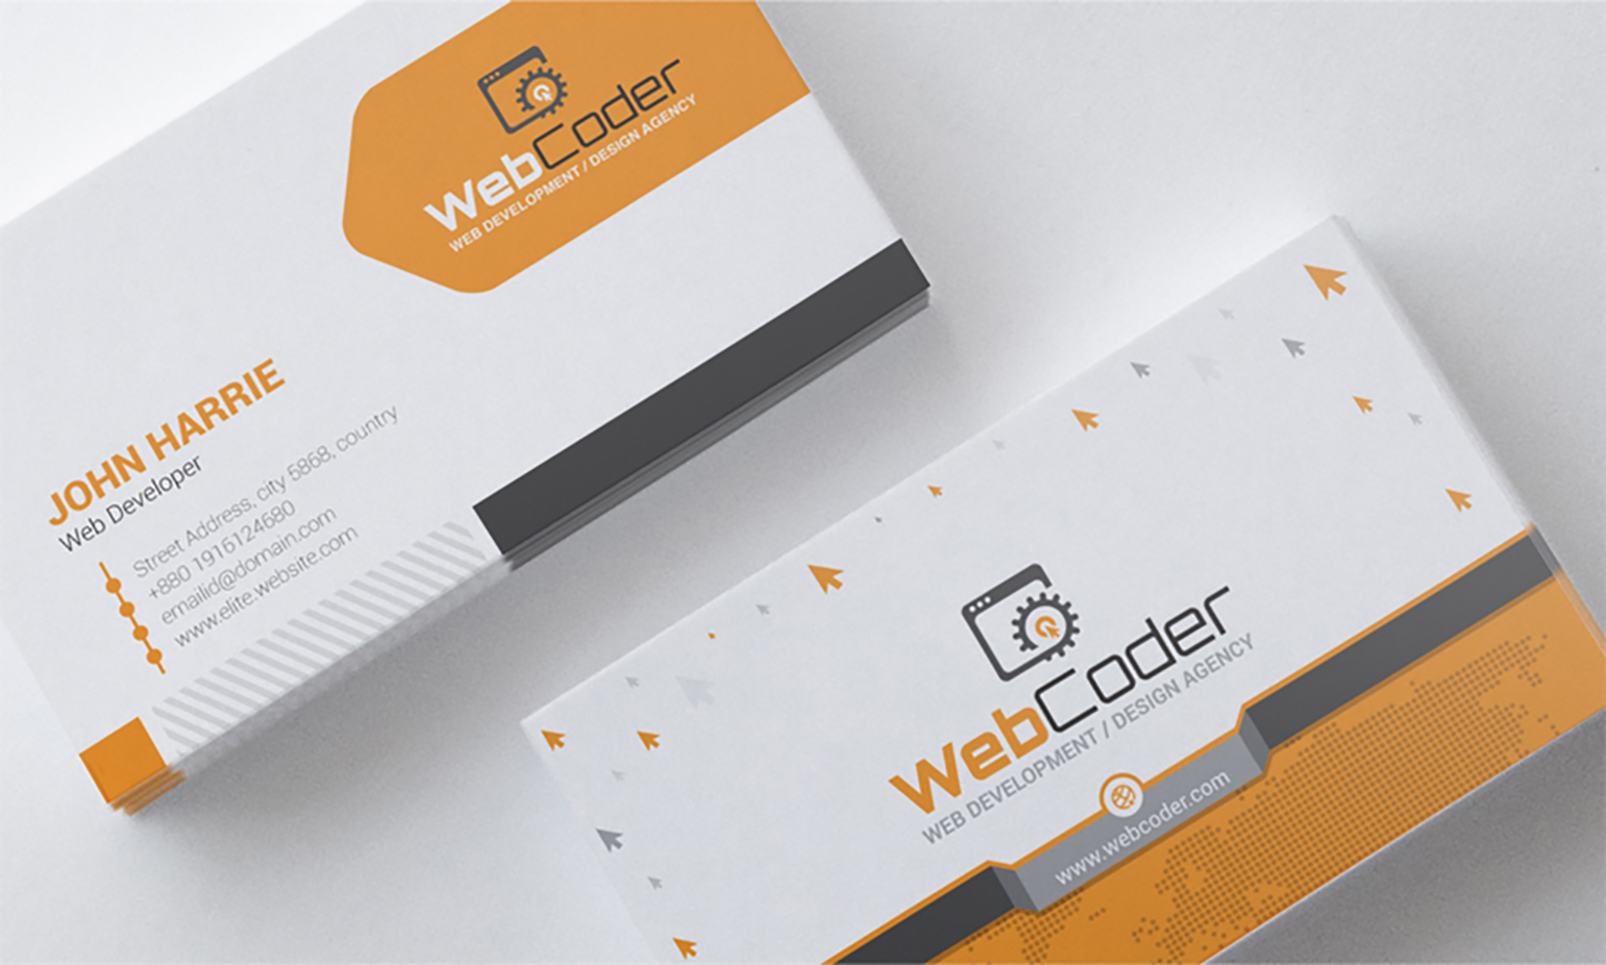 Business card design for web design and developer psd template 66306 business card design for web design and developer psd template big screenshot accmission Images